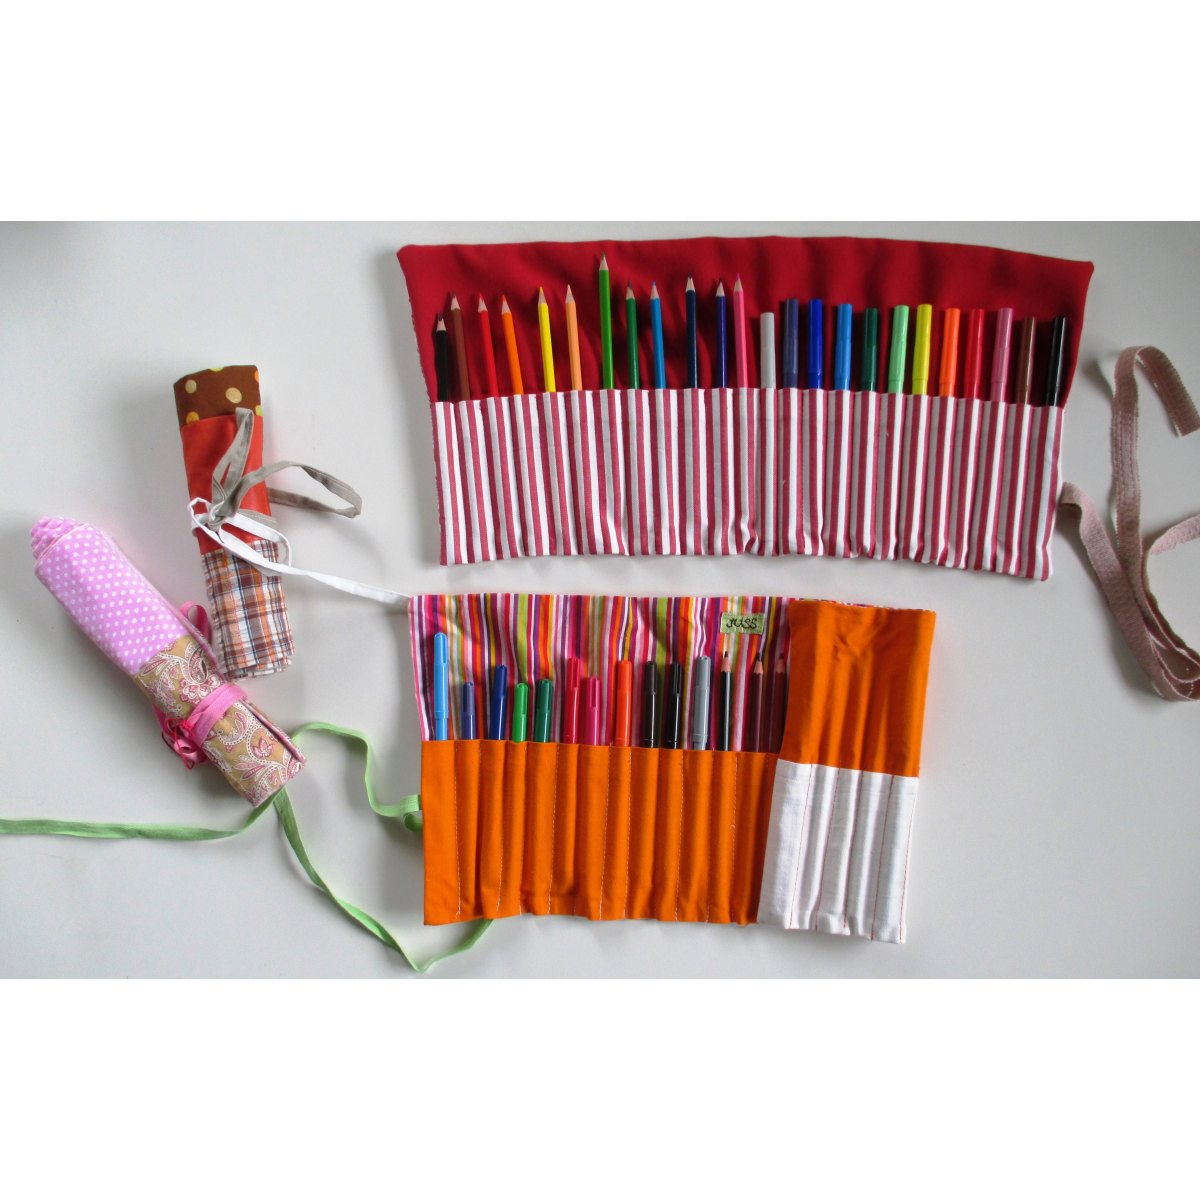 Atelier Trousse crayons